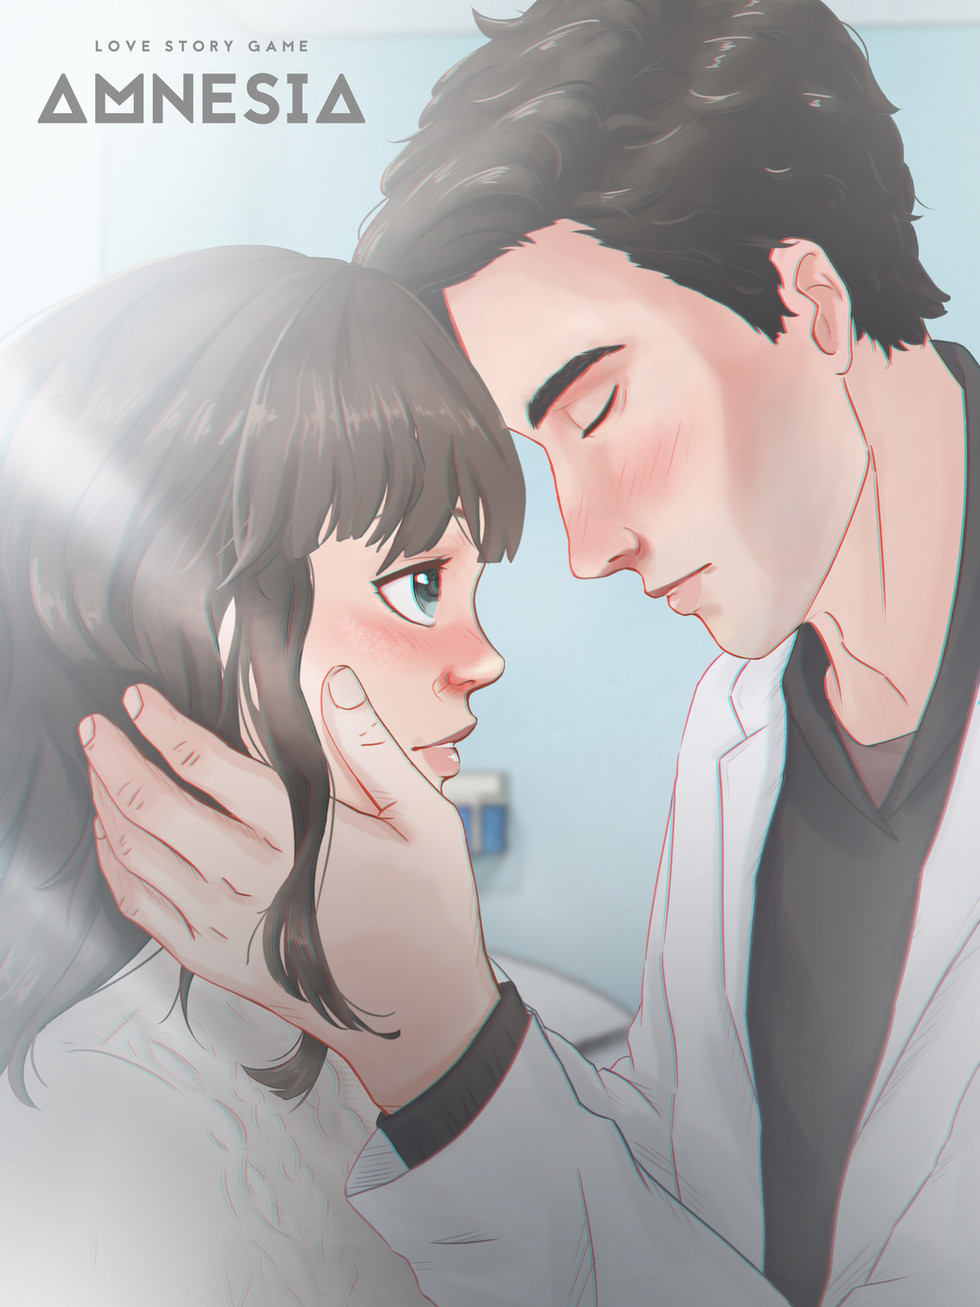 Doctor Touching Her Face Gently